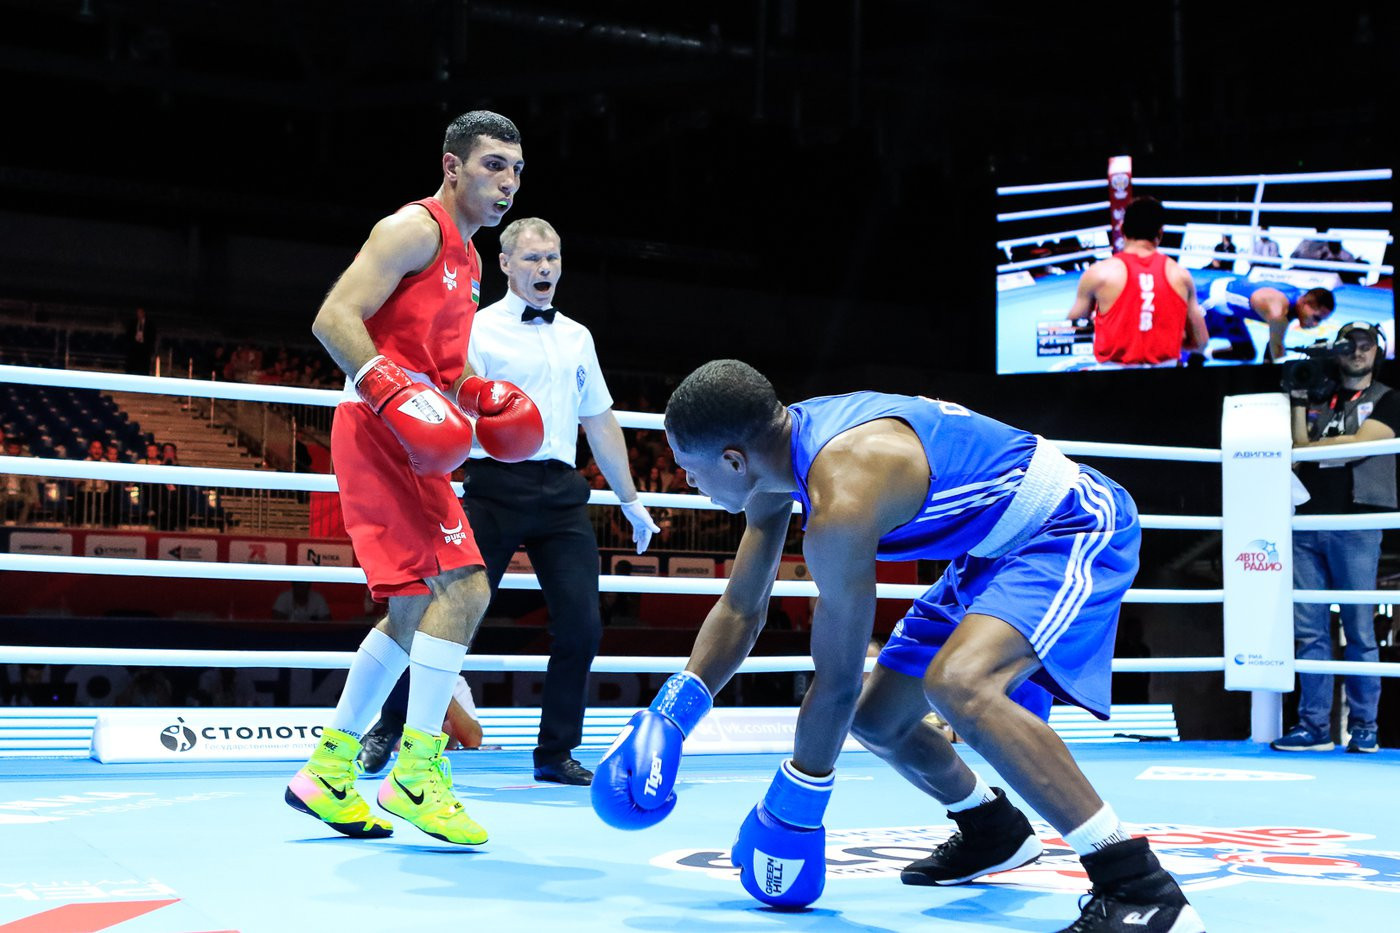 Olympic flyweight champion Zoirov knocks fourth seed out of AIBA Men's World Championships